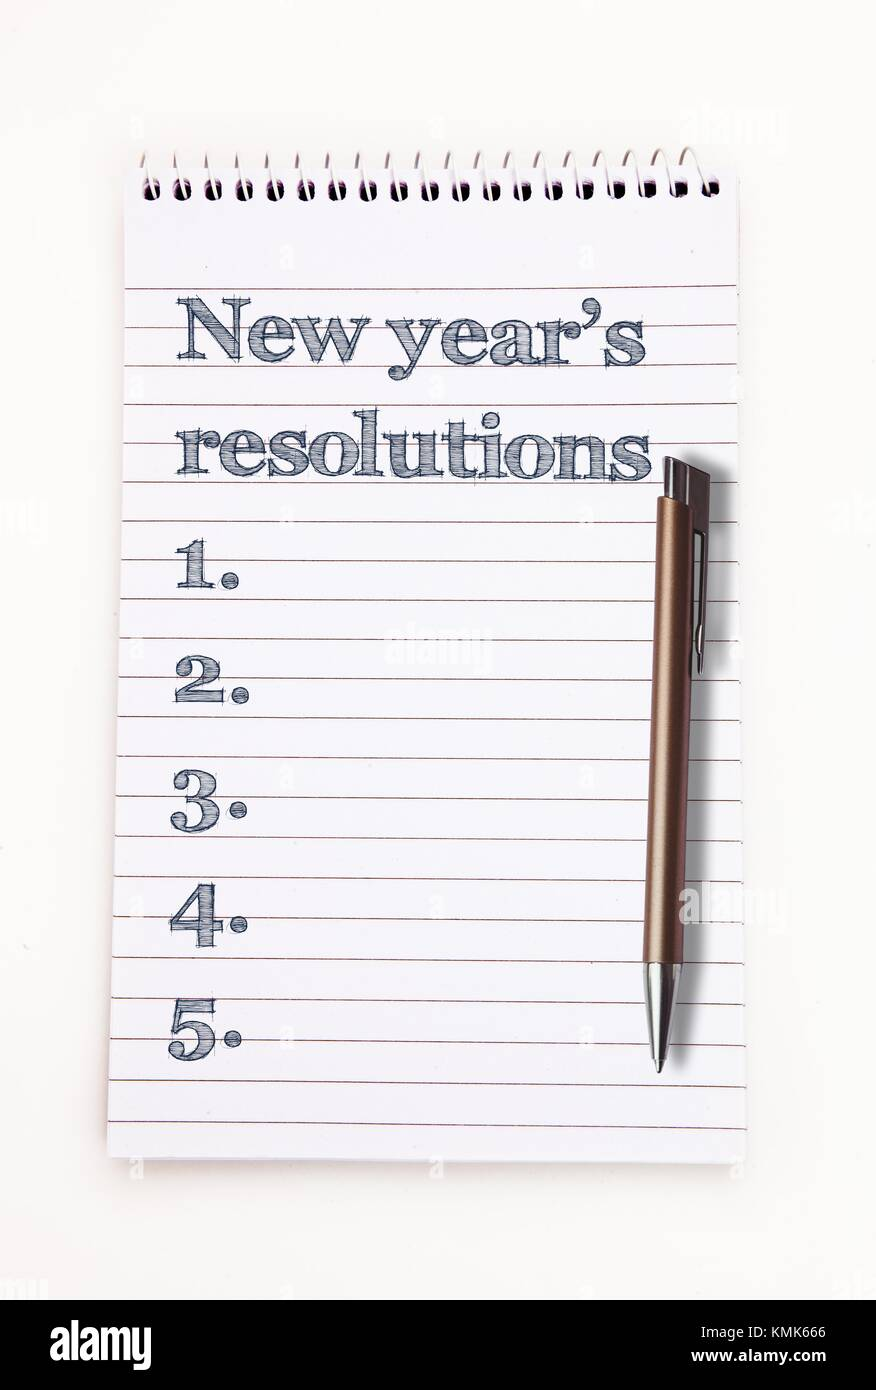 New year resolution list - Stock Image